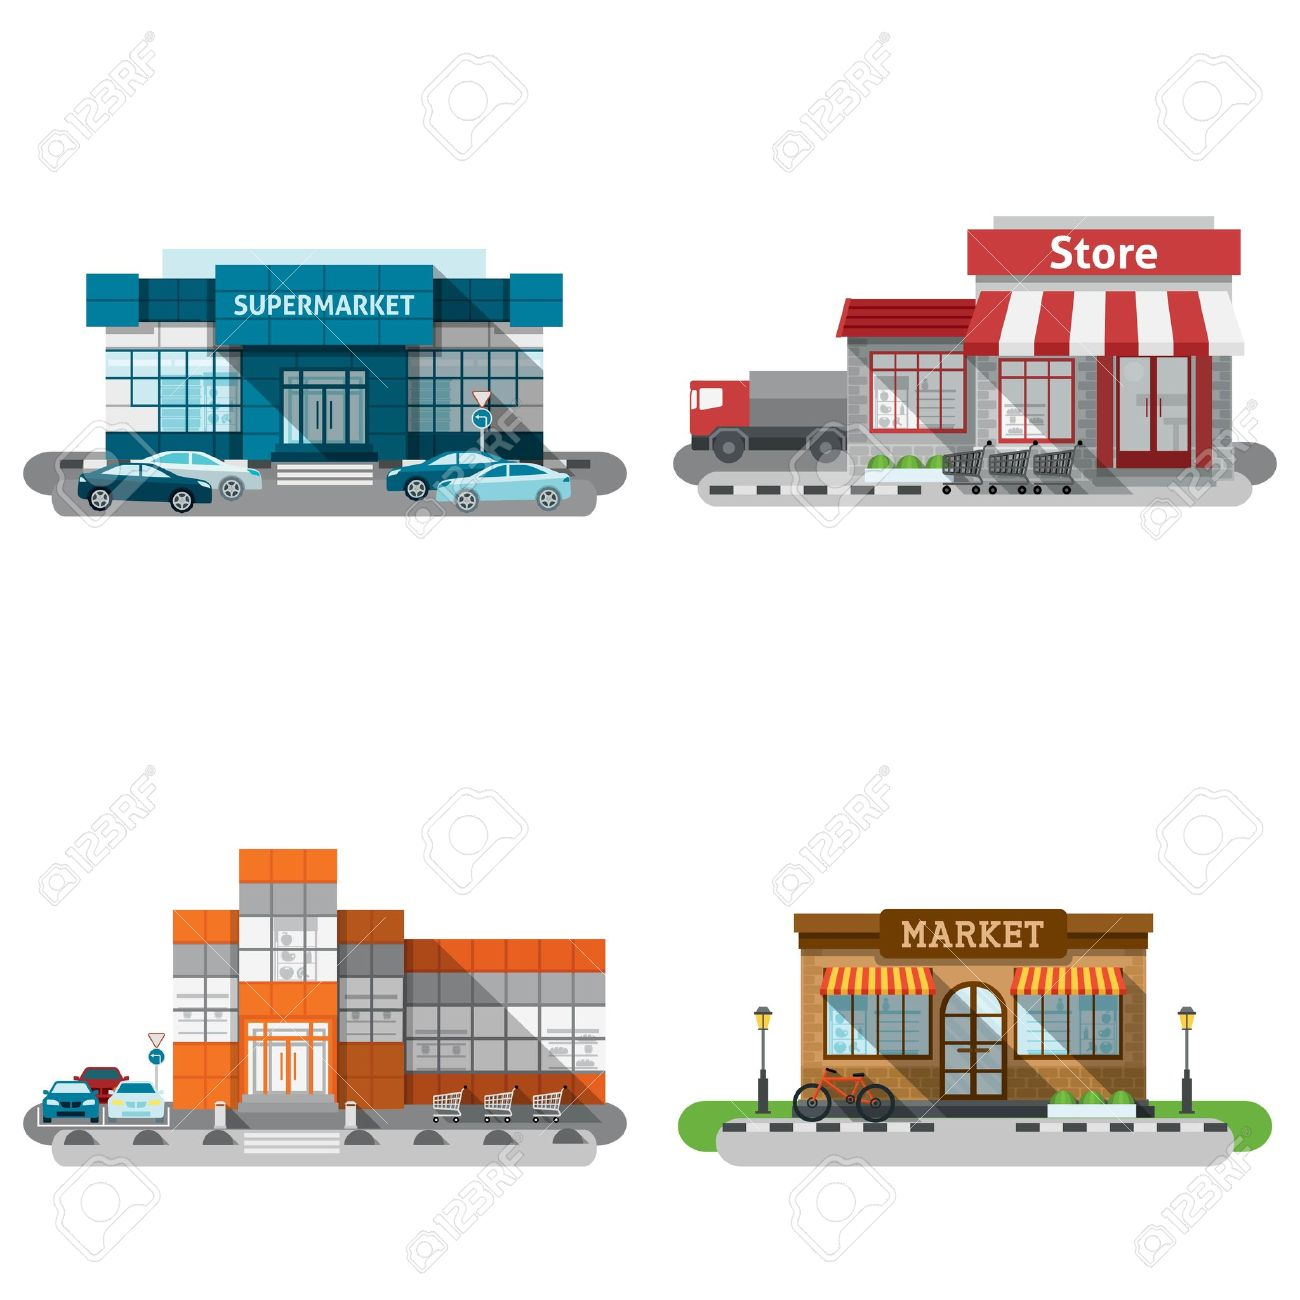 Shops Stores And Supermarket Buildings Flat Decorative Icons Set Isolated Vector Illustration Stock Vector 42462526